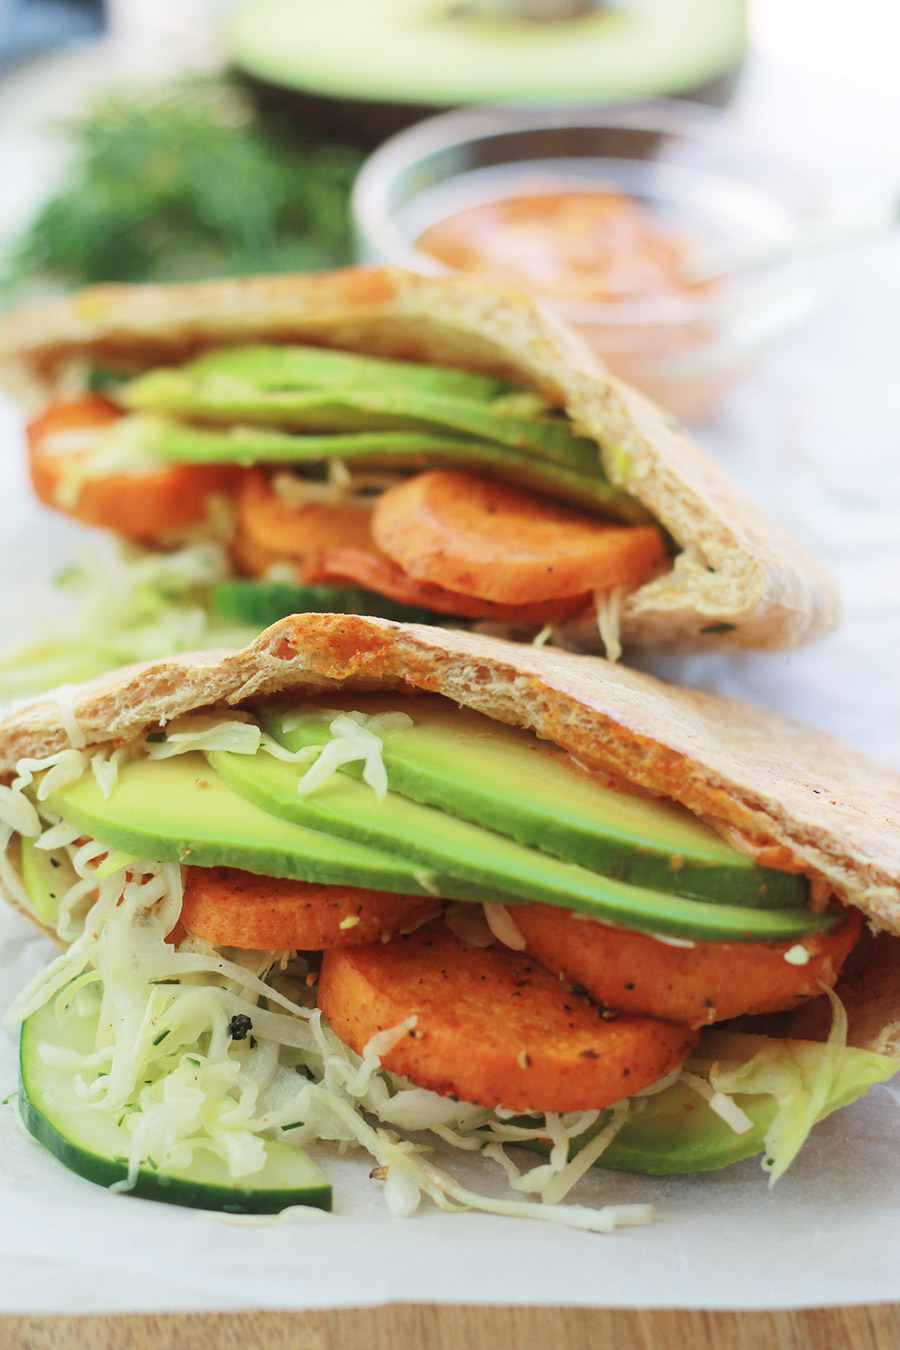 Pita pocket stuffed with spicy roasted sweet potato slices, cucumber slaw and avocado slices, with half of an avocado slice and sandwich spread in background.